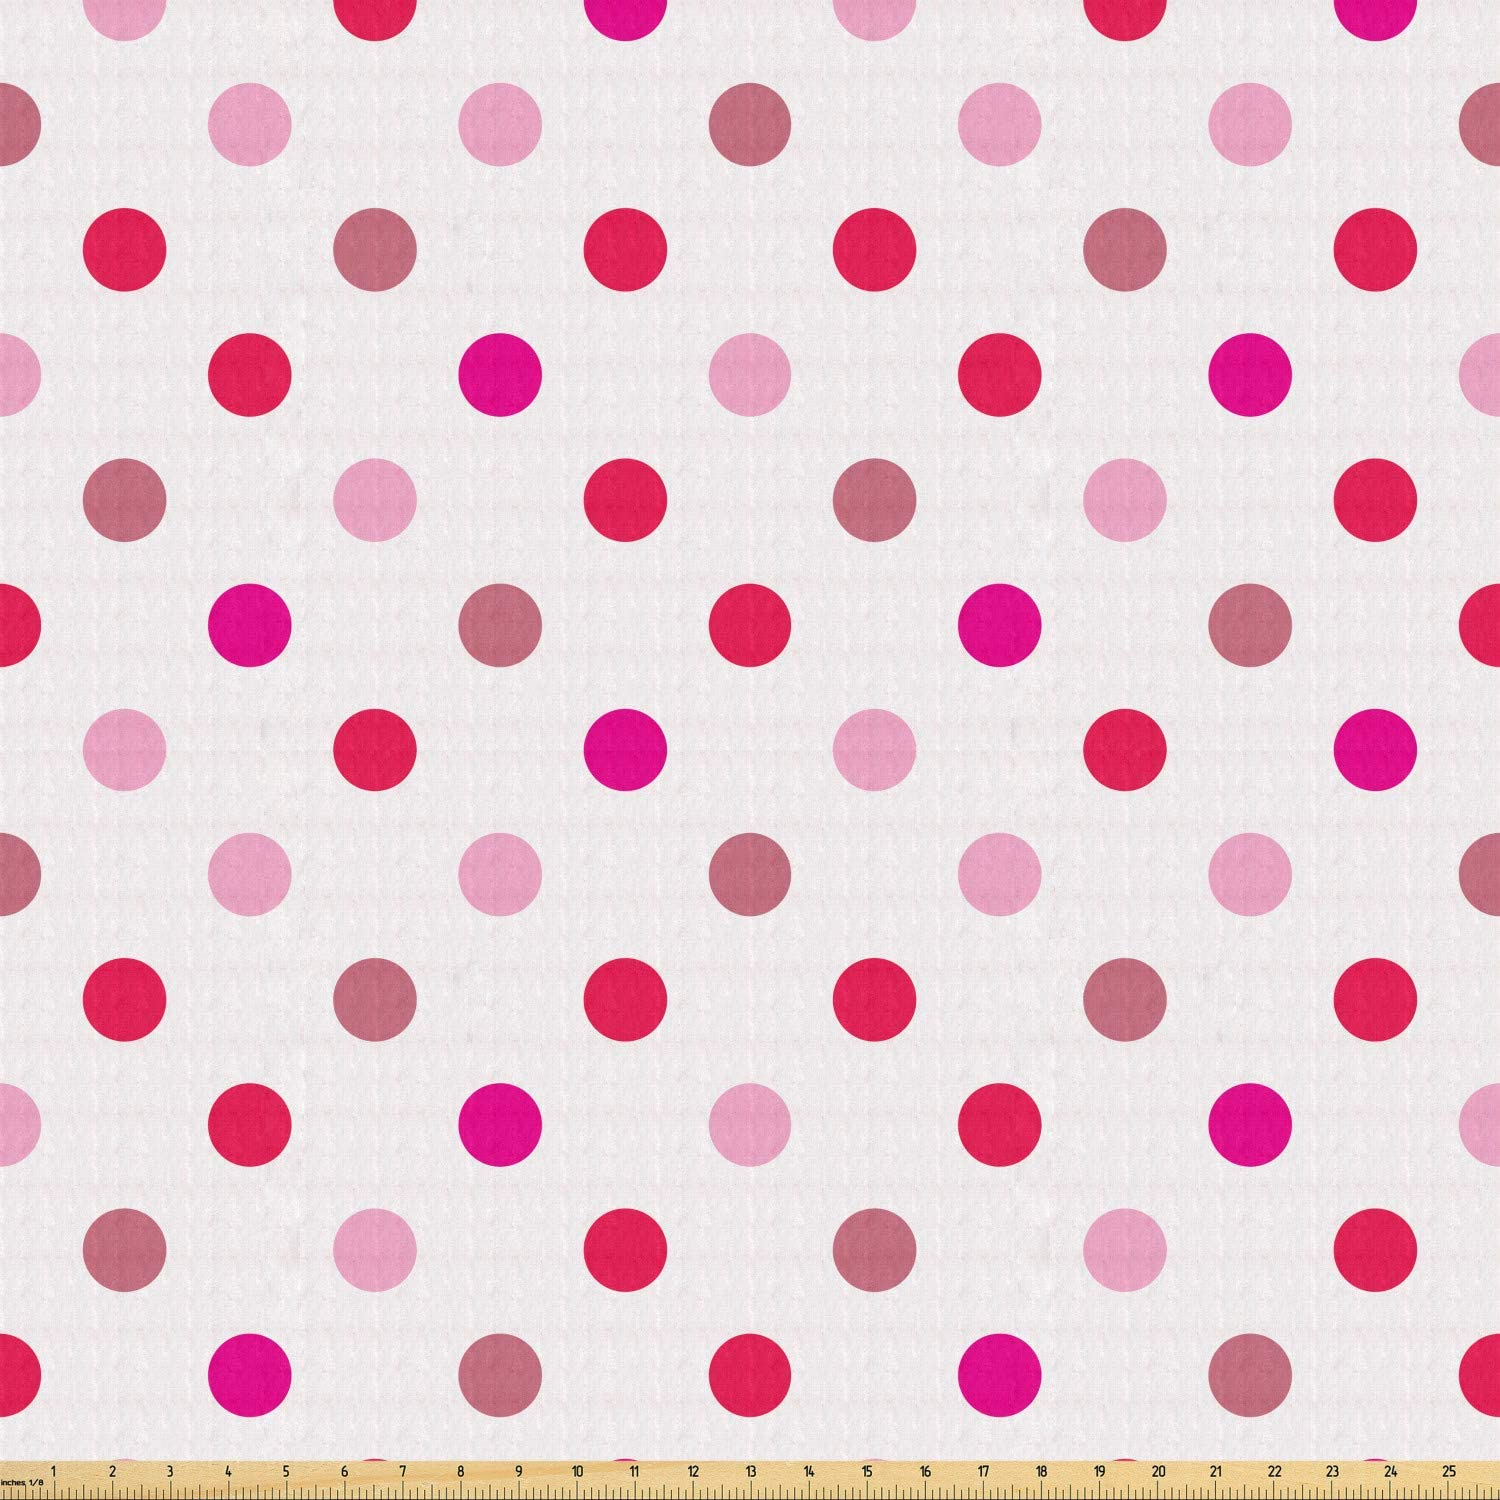 Lunarable Polka Dots Fabric by The Yard, Polka Dots Pattern Consisting of an Array of Filled Circles Pop Art, Stretch Knit Fabric for Clothing Sewing and Arts Crafts, 1 Yard, Baby Pink Fuchsia White